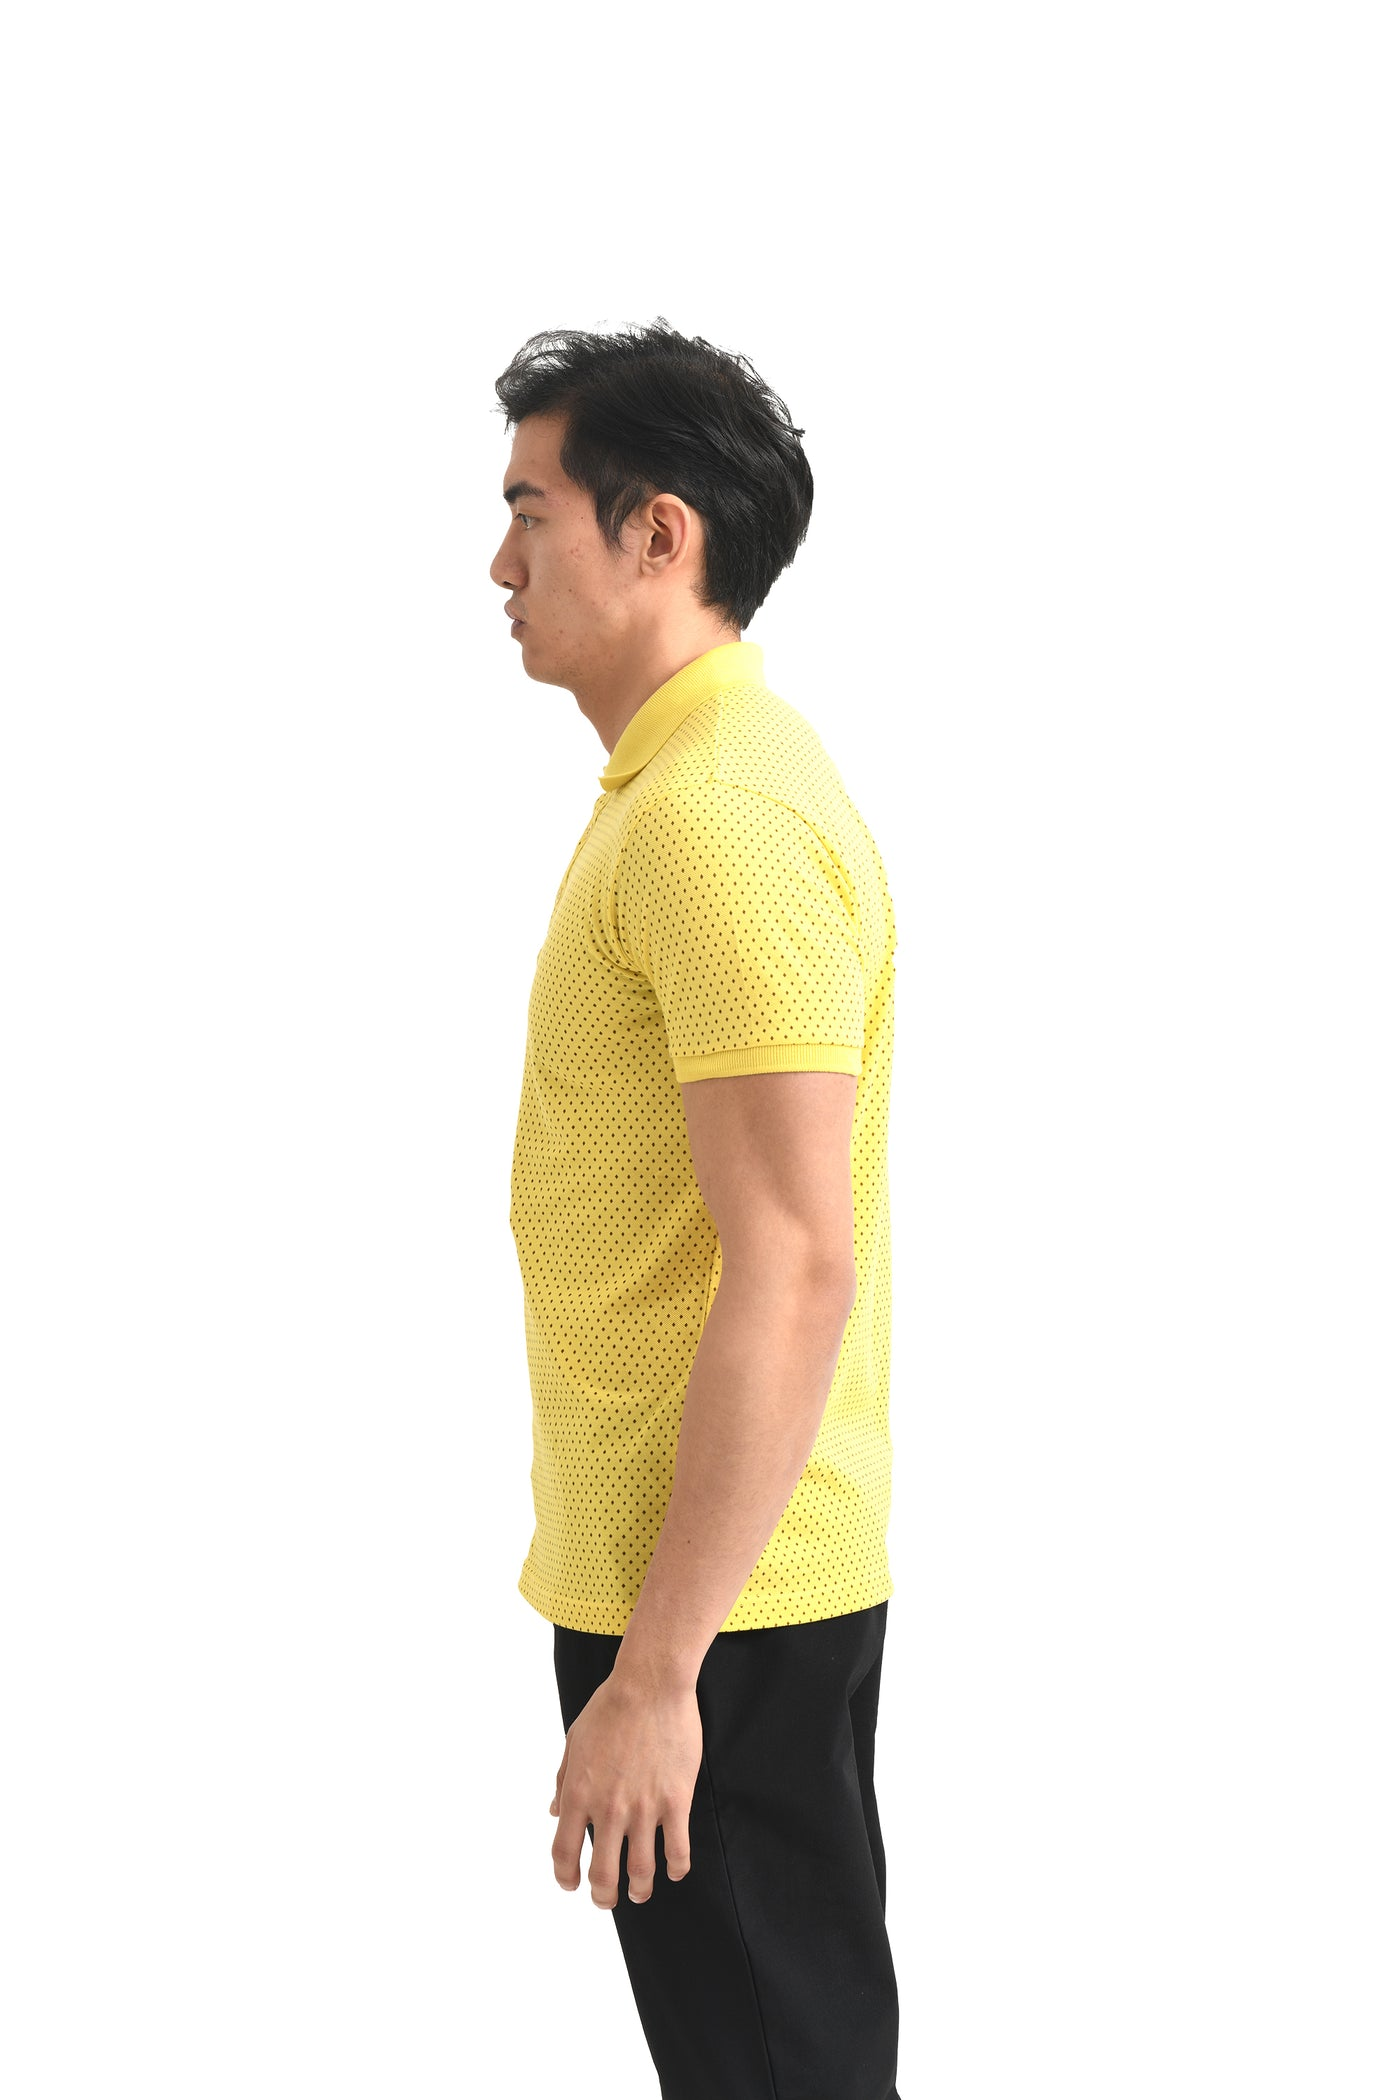 Batyr in Yellow